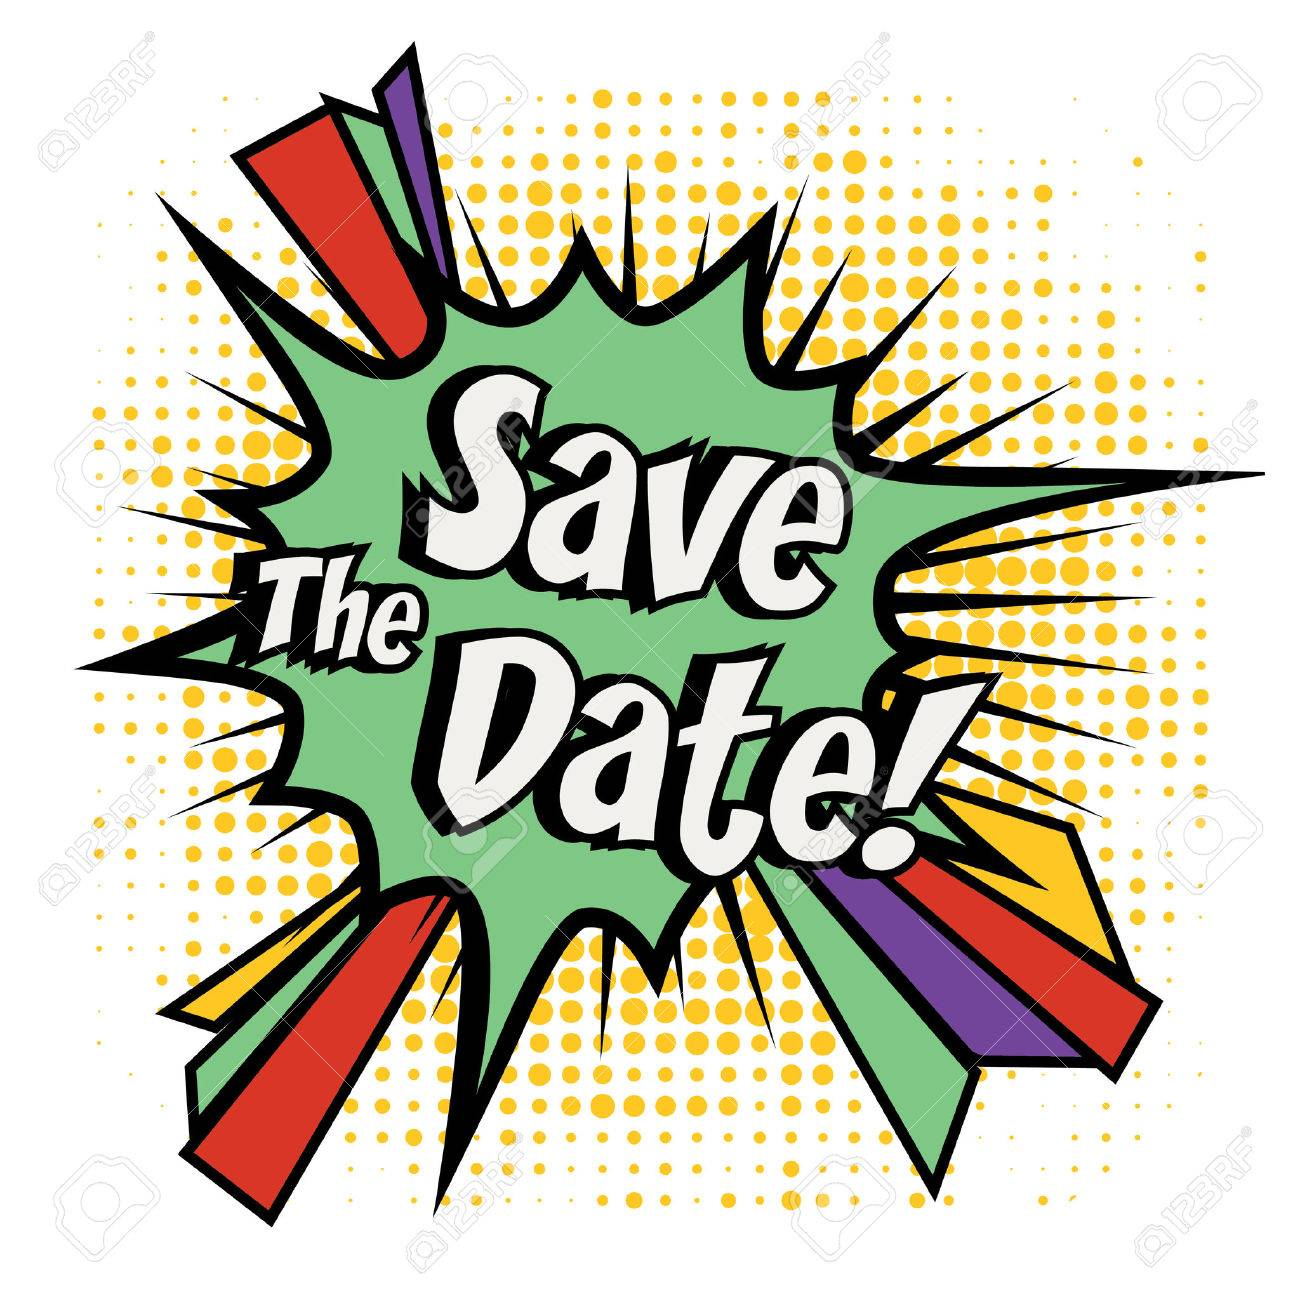 save the date pop art royalty free cliparts vectors and stock rh 123rf com free clipart images save the date save the date clipart free download